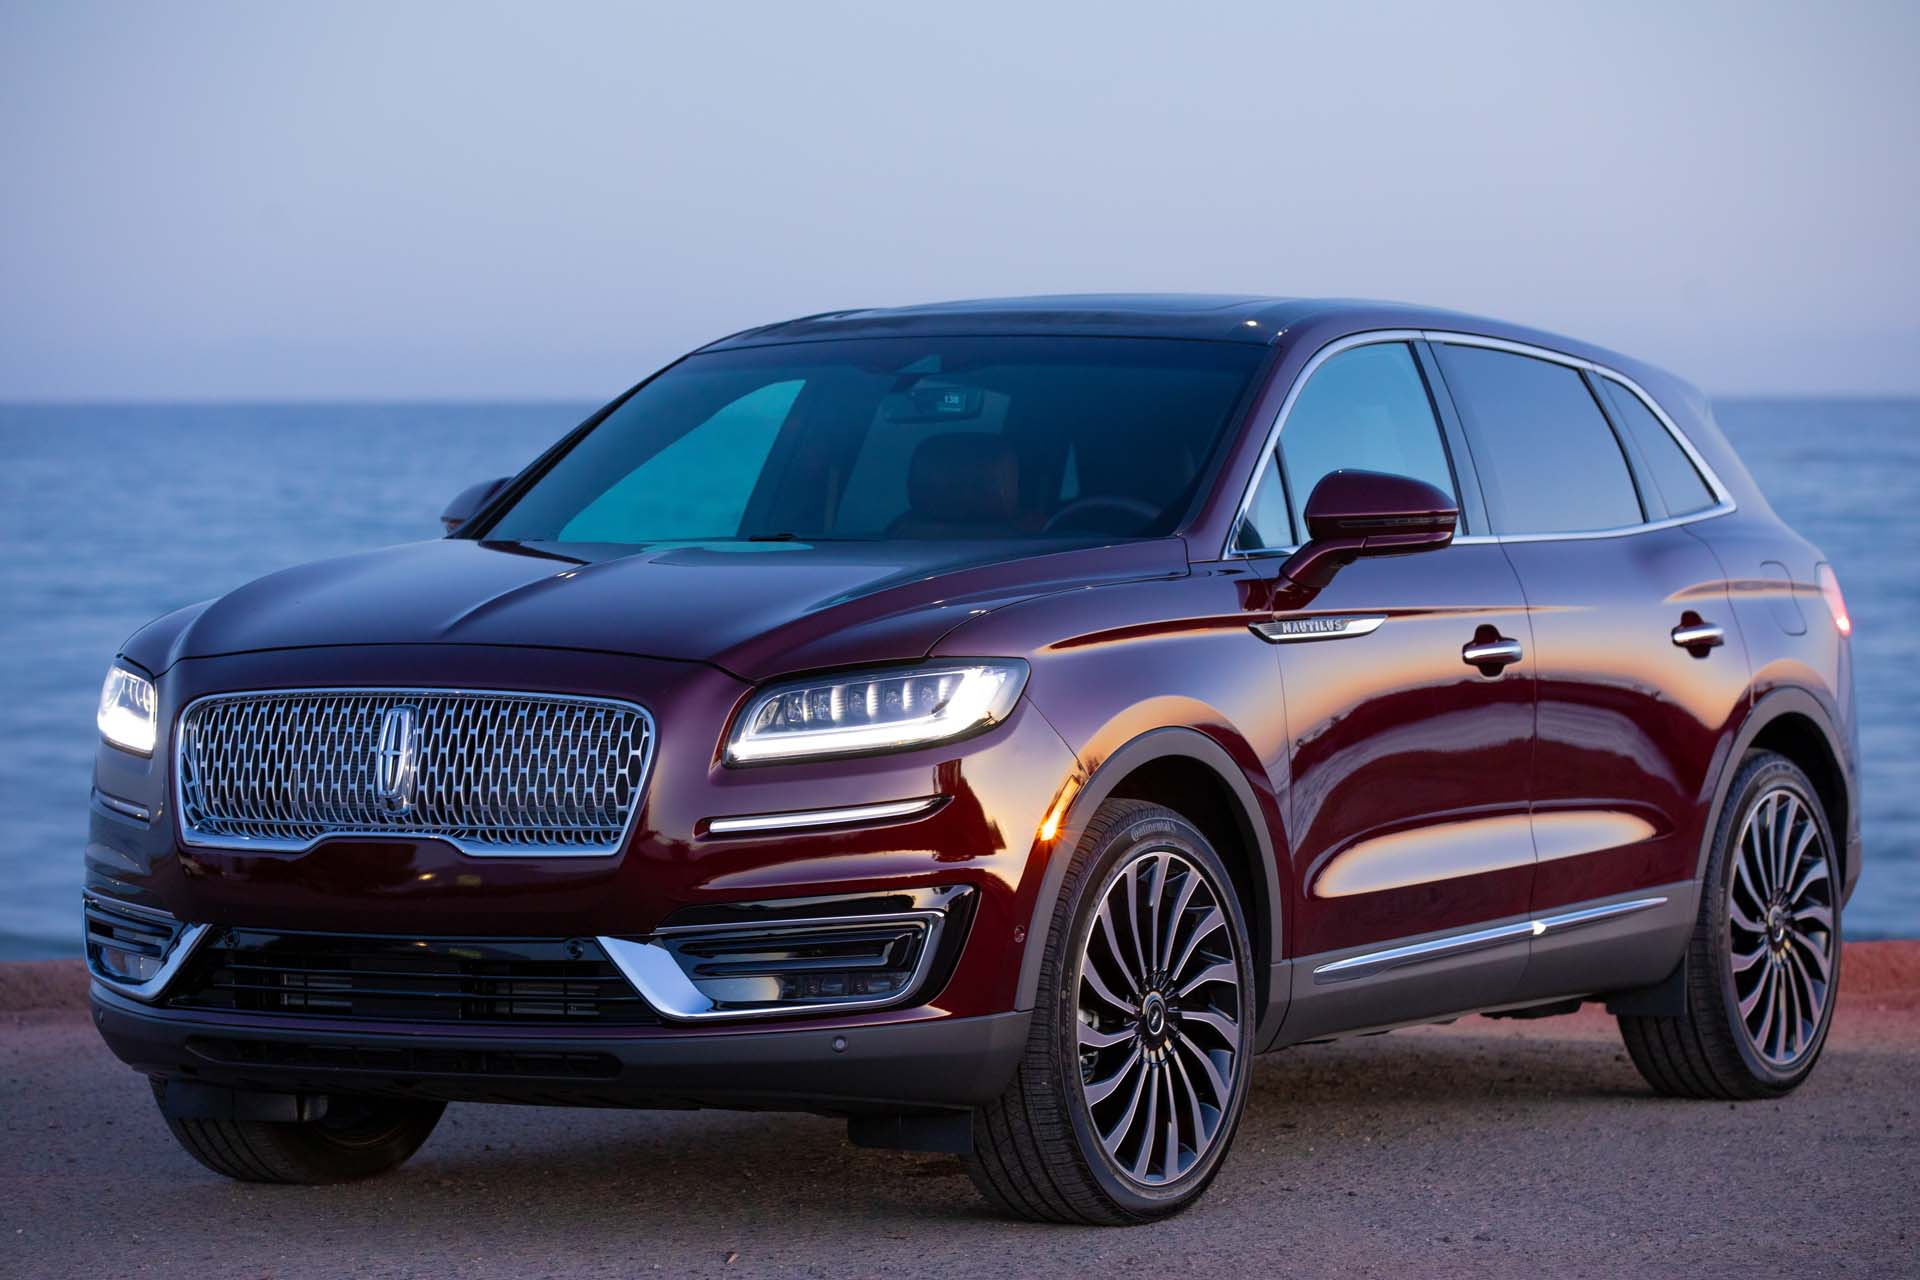 2020 Lincoln Nautilus: Design, Performance, Price >> 2019 Lincoln Nautilus First Drive Review Deep Dive Into Crossover